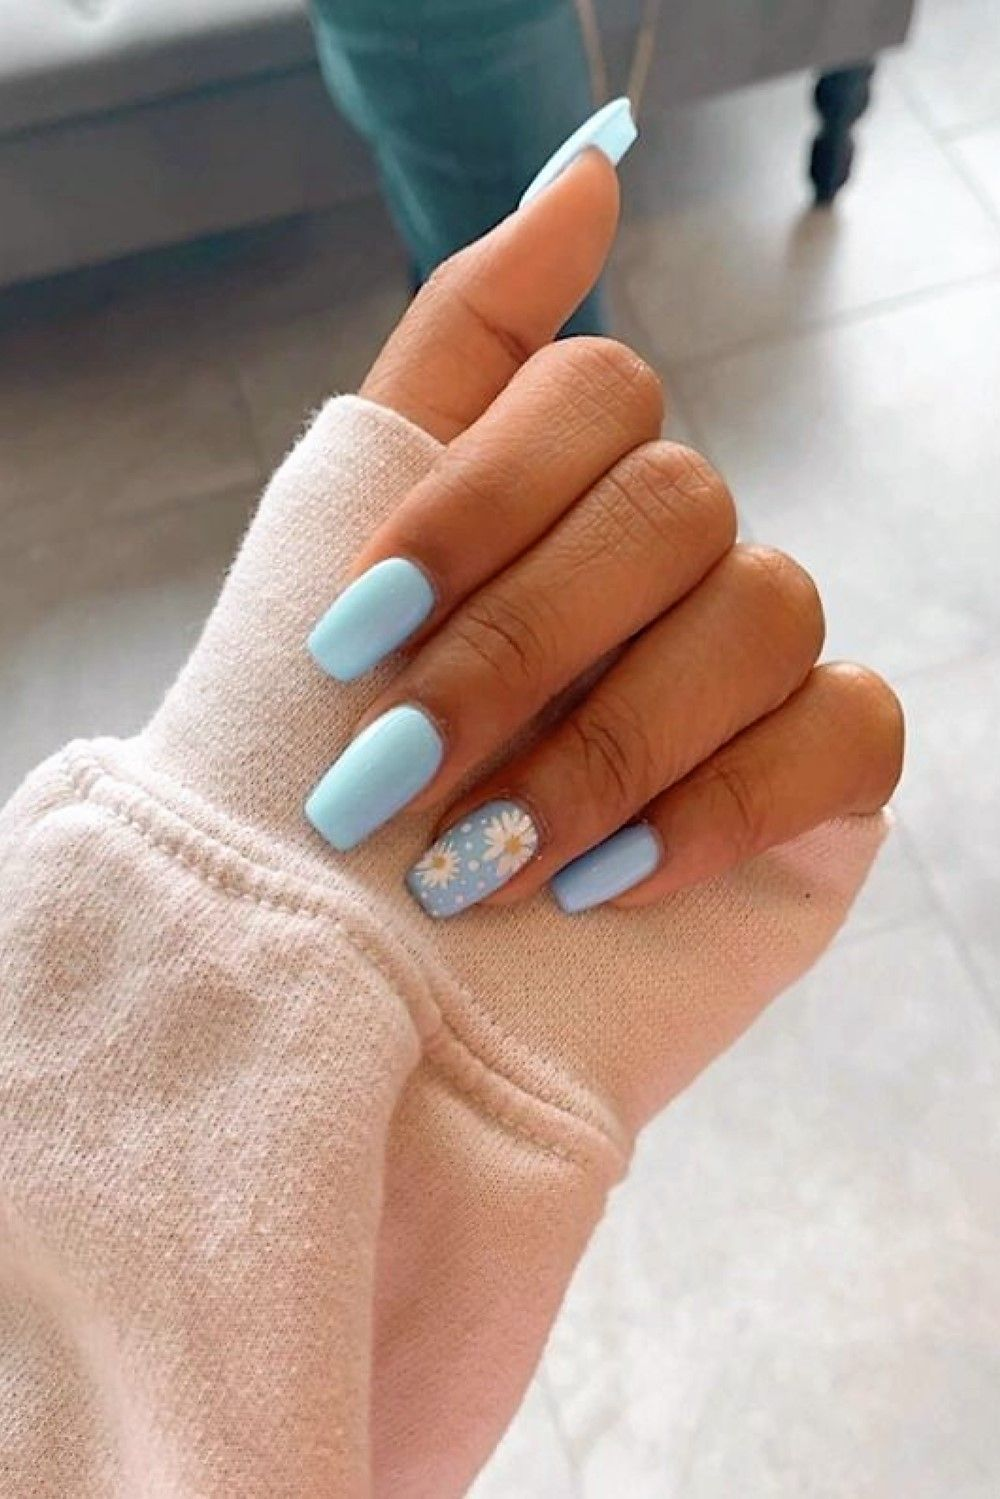 Simple Summer Acrylic Nails : simple, summer, acrylic, nails, Designs, Beautiful, Flower, Ideas, Short, Acrylic, Nails, Designs,, Coffin, Short,